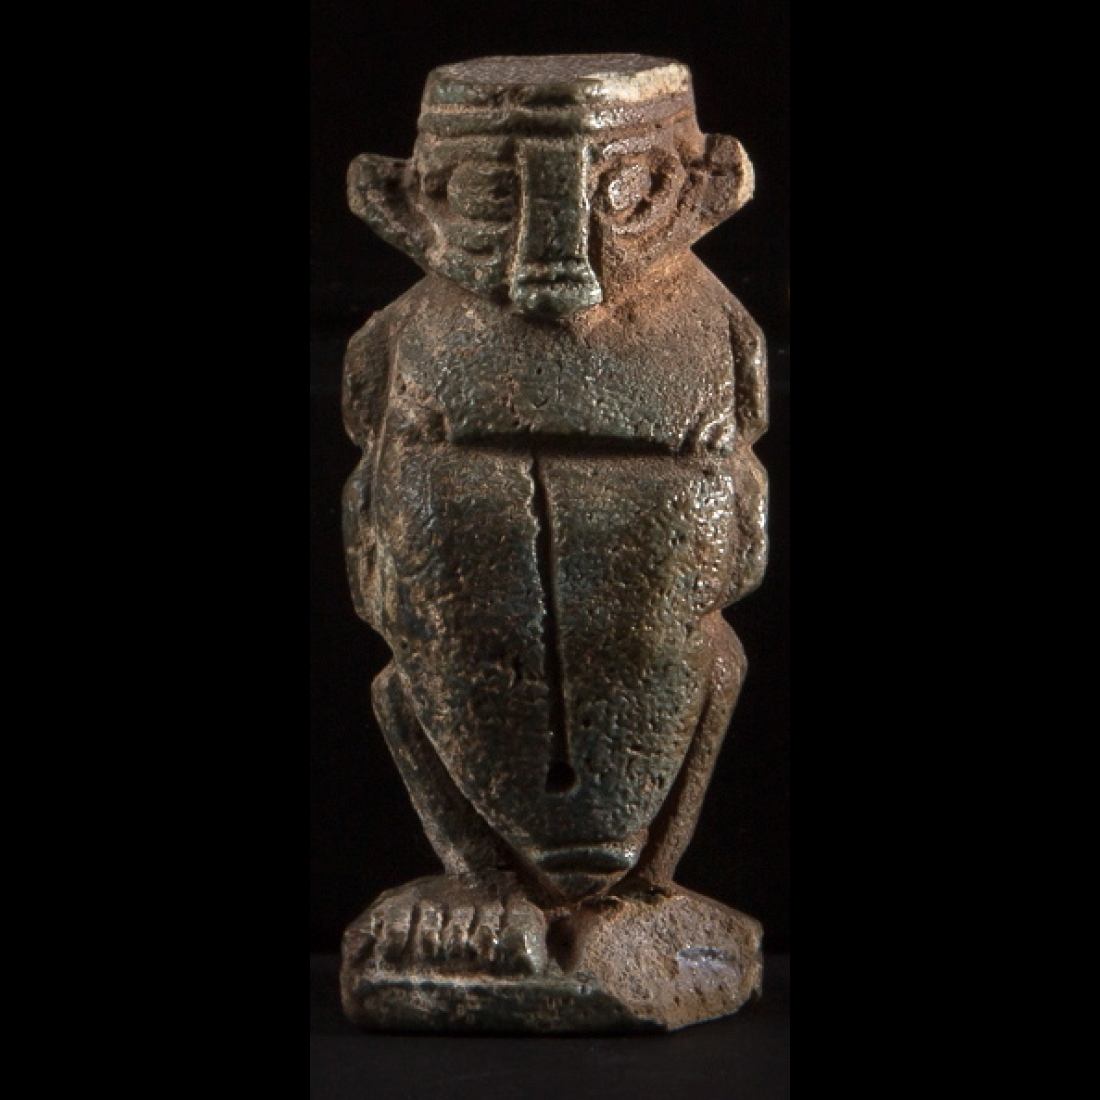 Photo of egypt-late-period-ptah-patek-amulet-frit-beetle-pataikos-egypte-basse-epoque-amulette-ptah-pateque-fritte